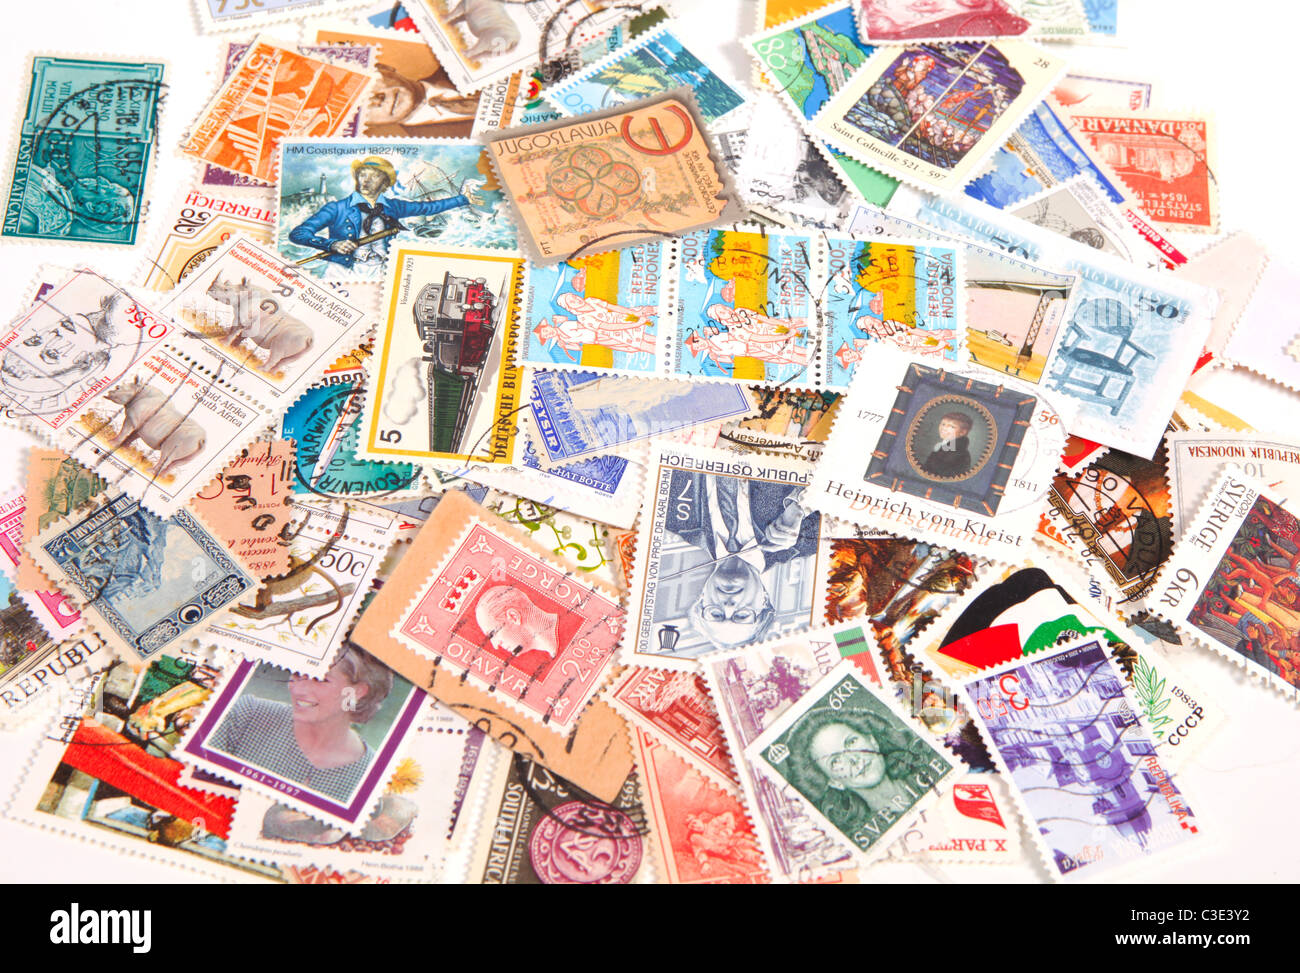 Collection of international postage stamps on a bunch - Stock Image